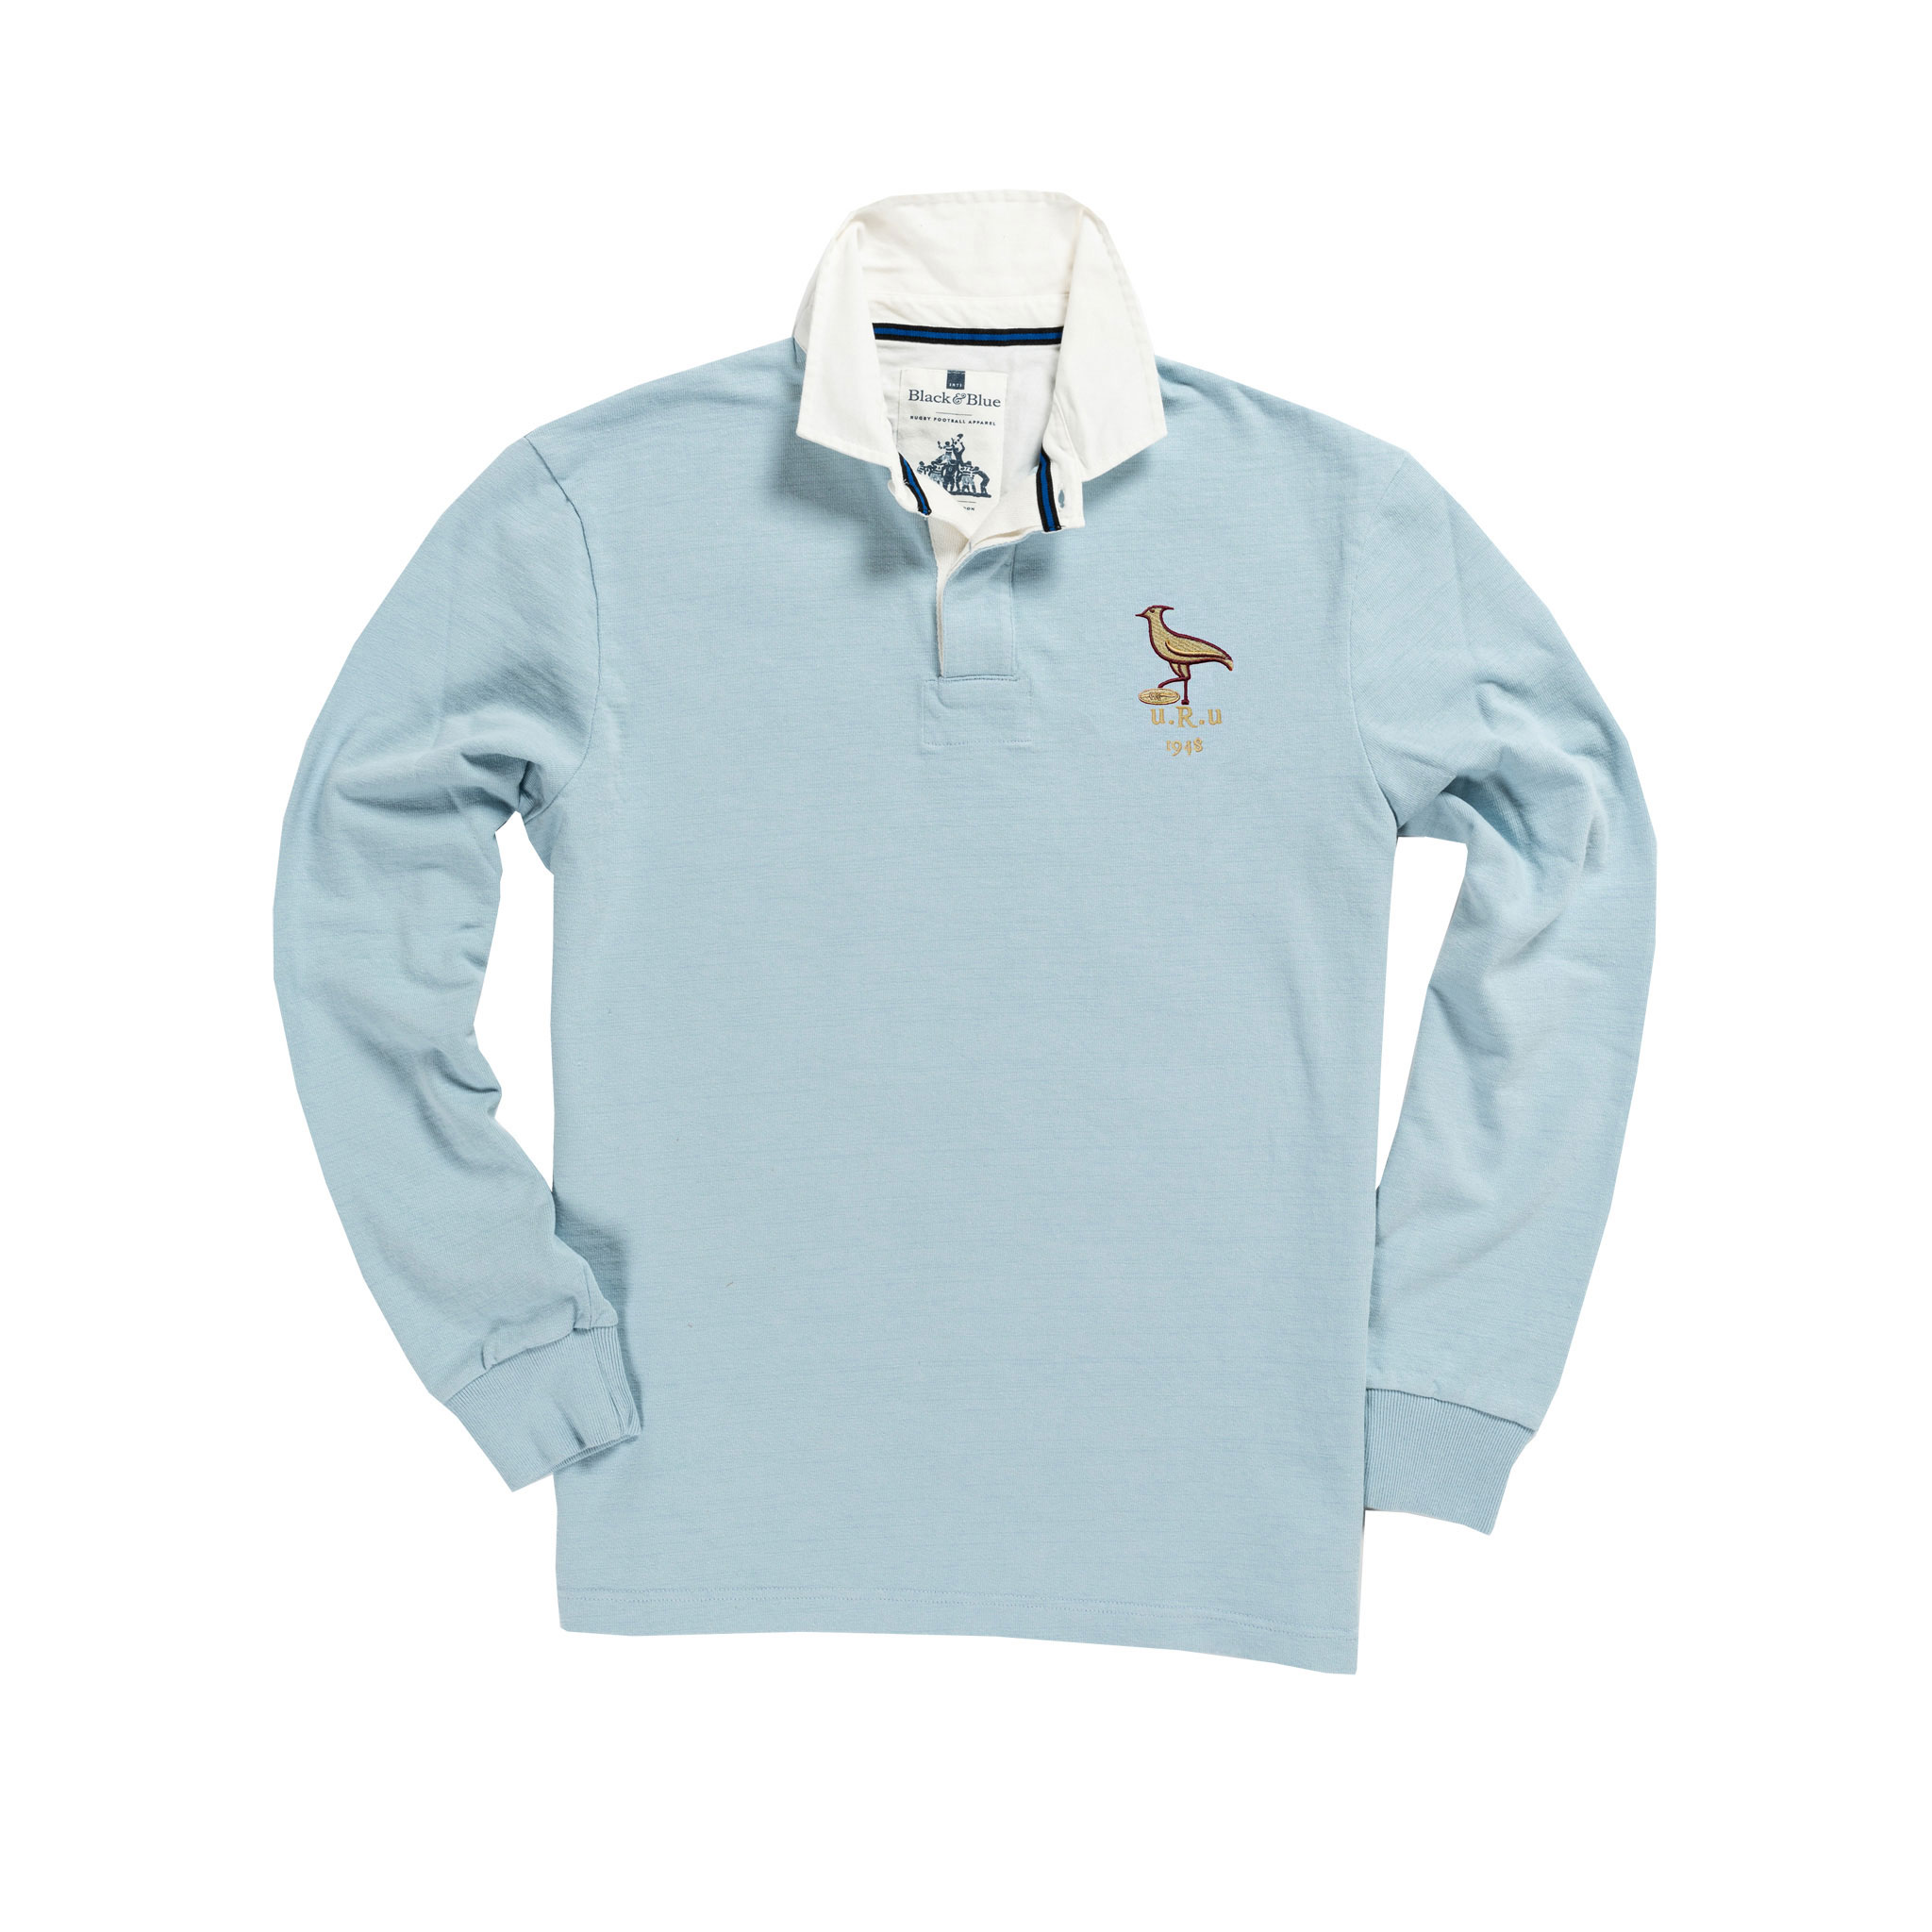 Uruguay_1948_Vintage_Rugby Shirt_Front